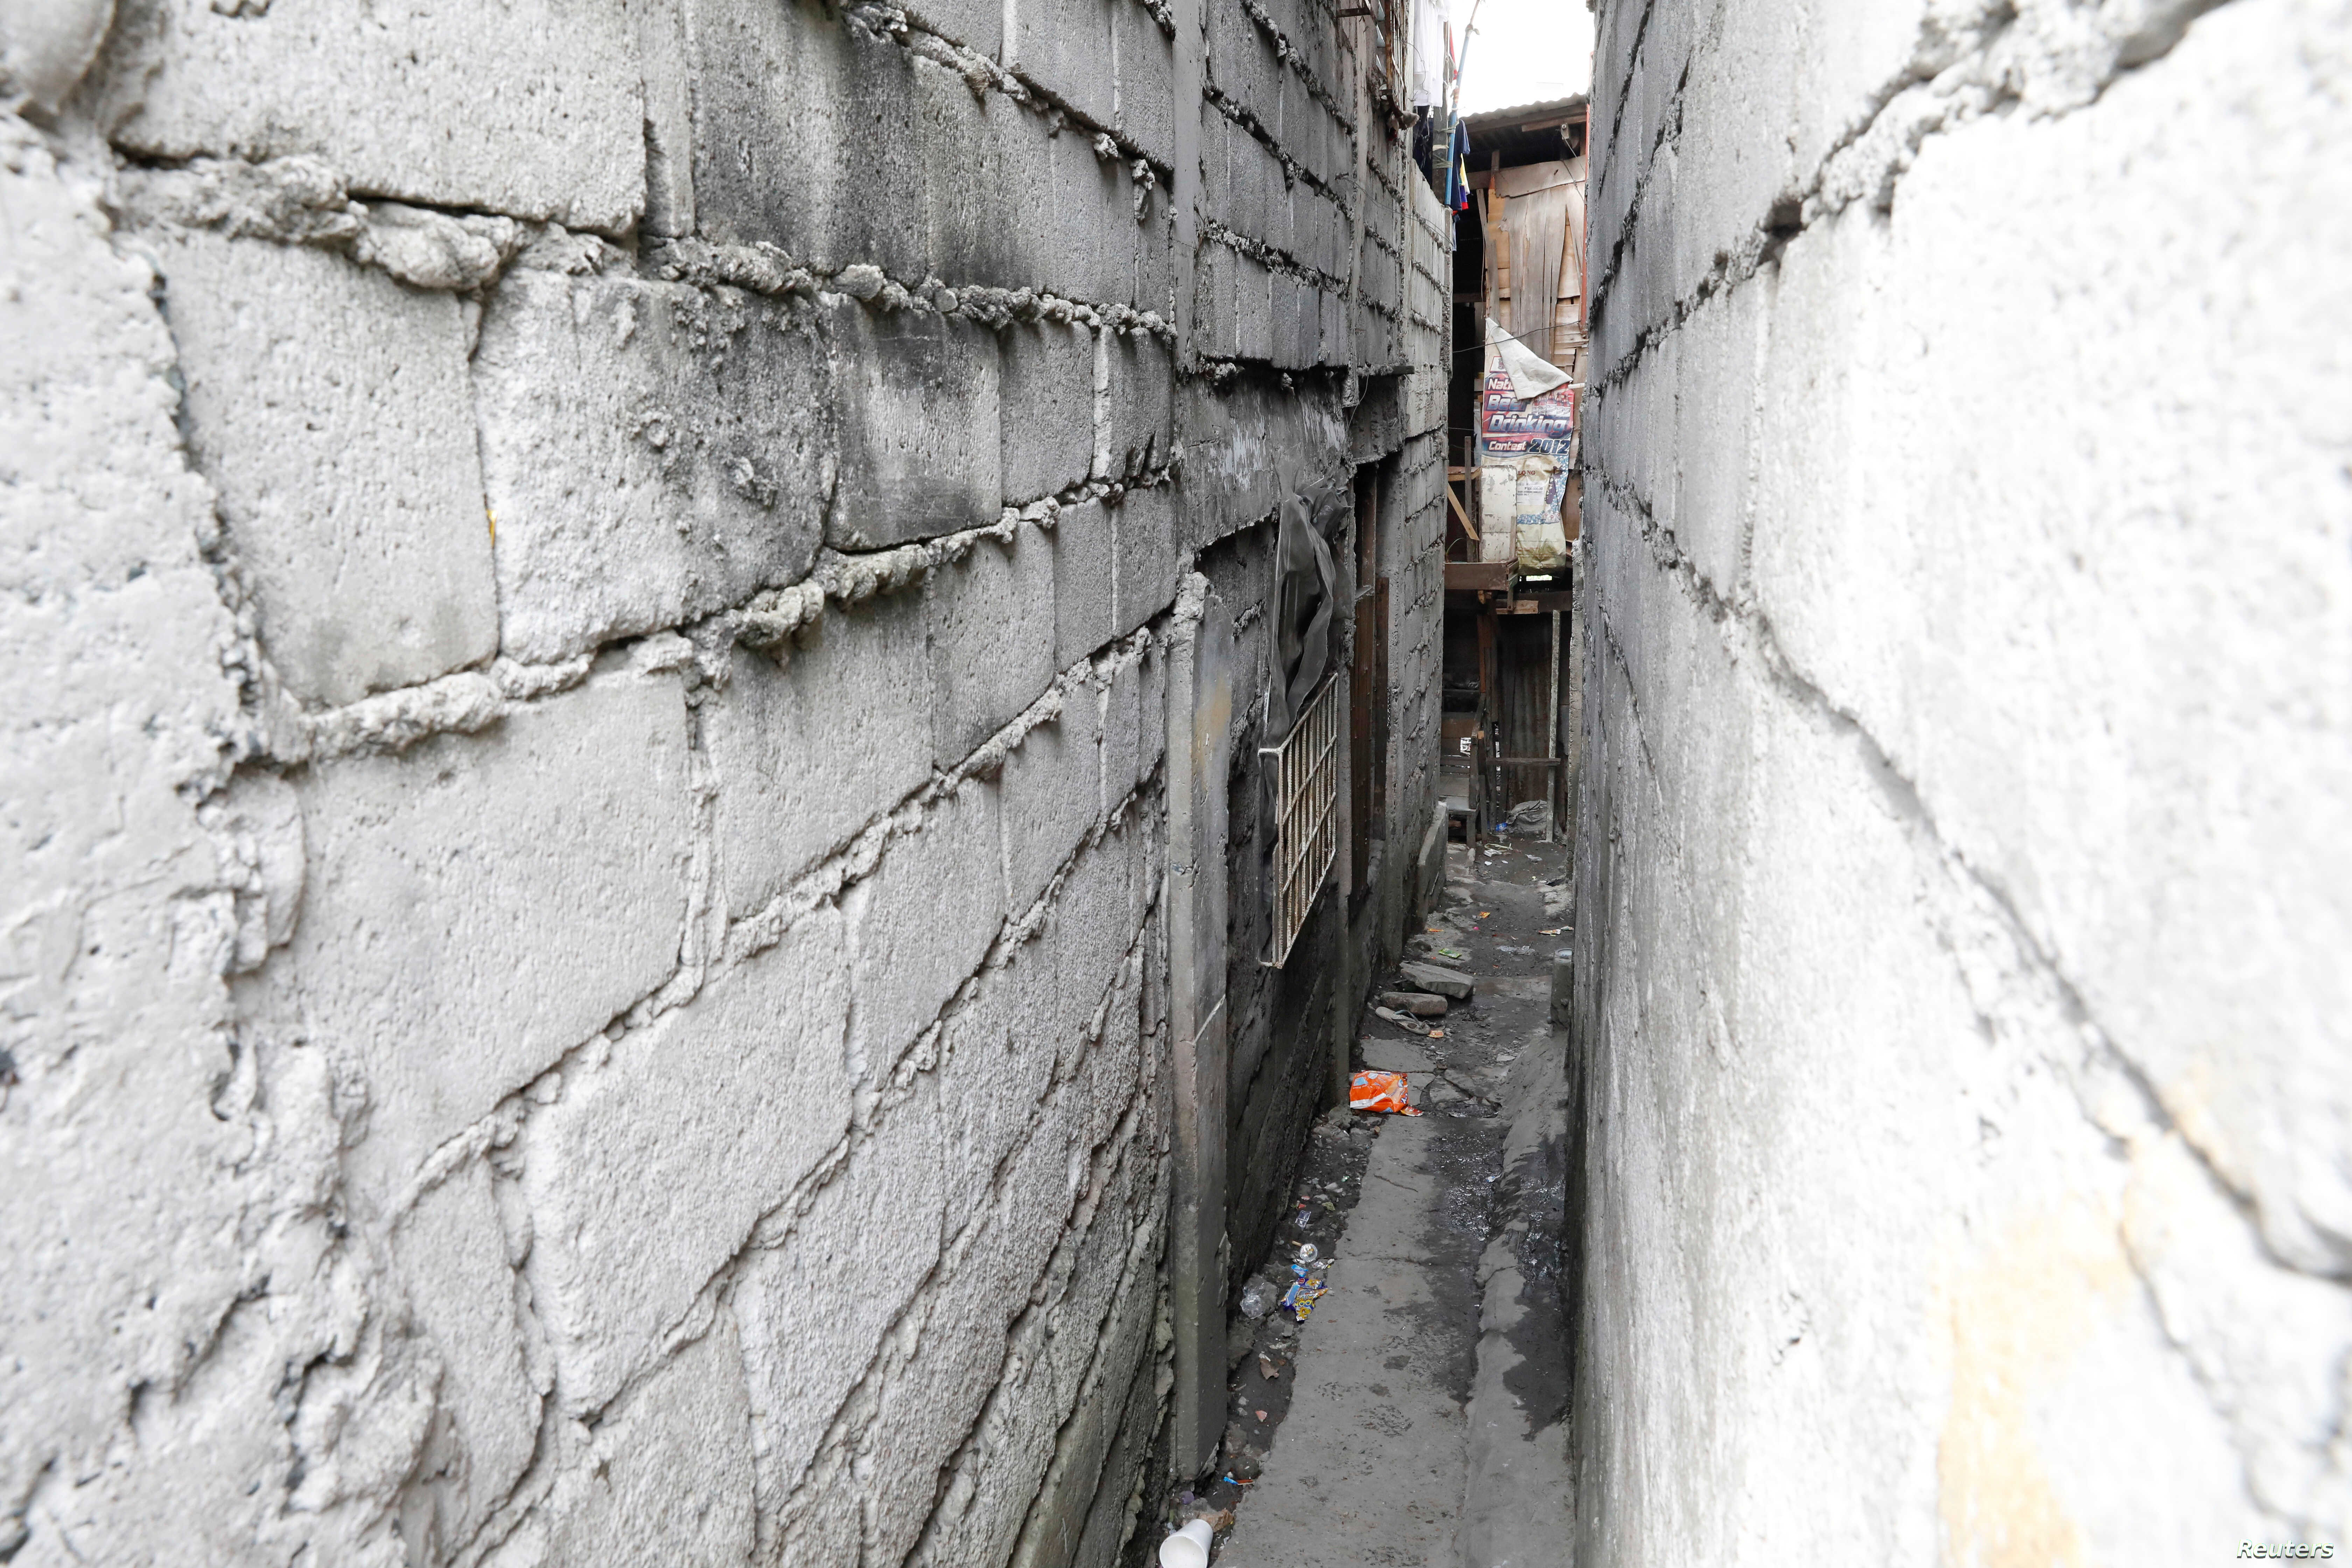 A small alley with a door on the far end on the left leads to a drug den in Manila, Philippines, Feb. 13, 2017.